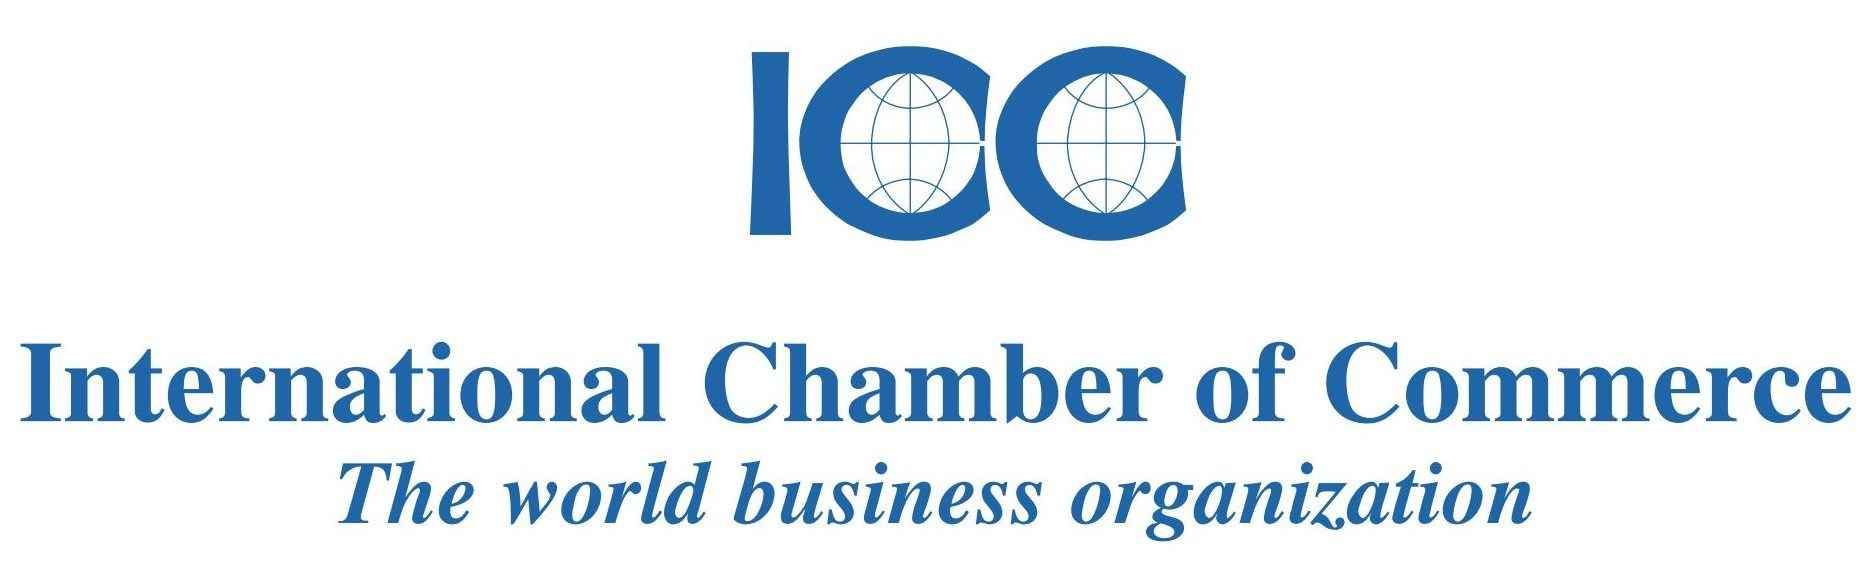 ICC   International Chamber of Commerce Logo [EPS PDF] png